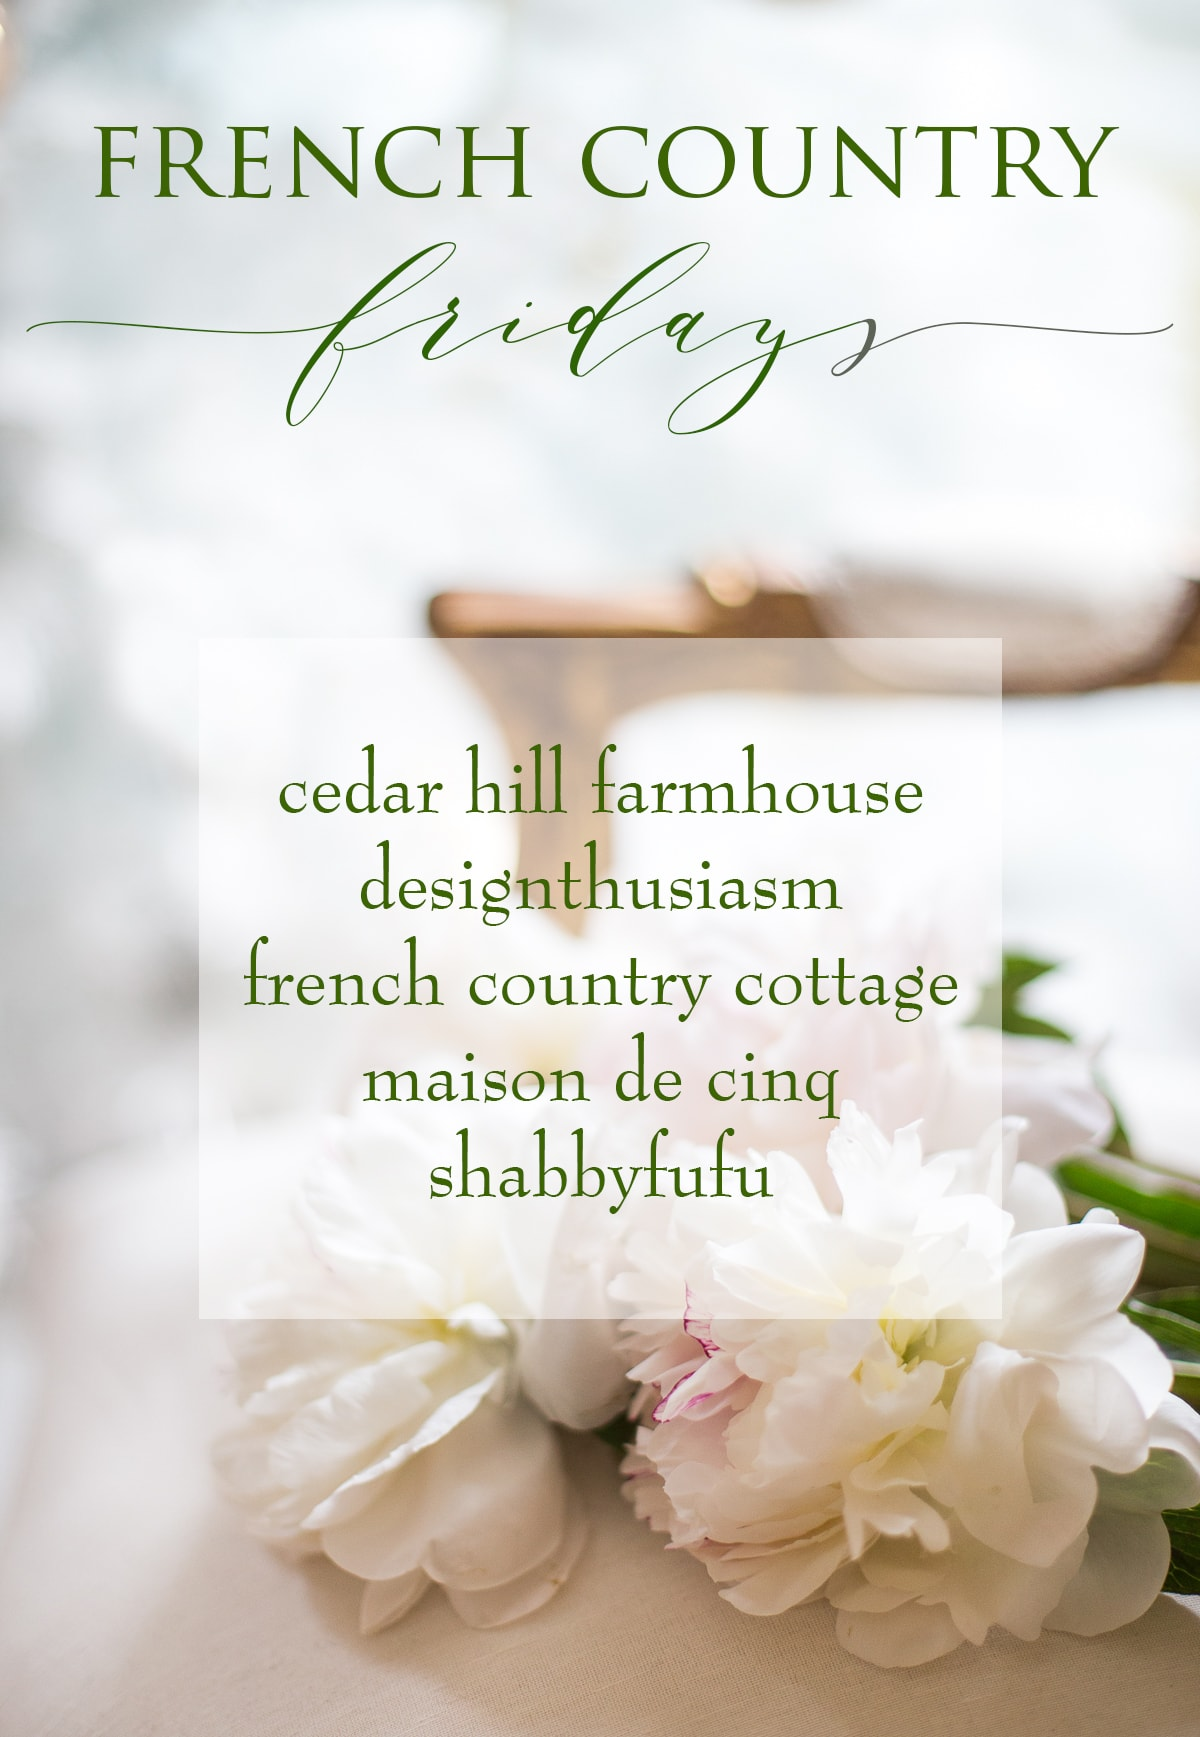 French Country Fridays logo